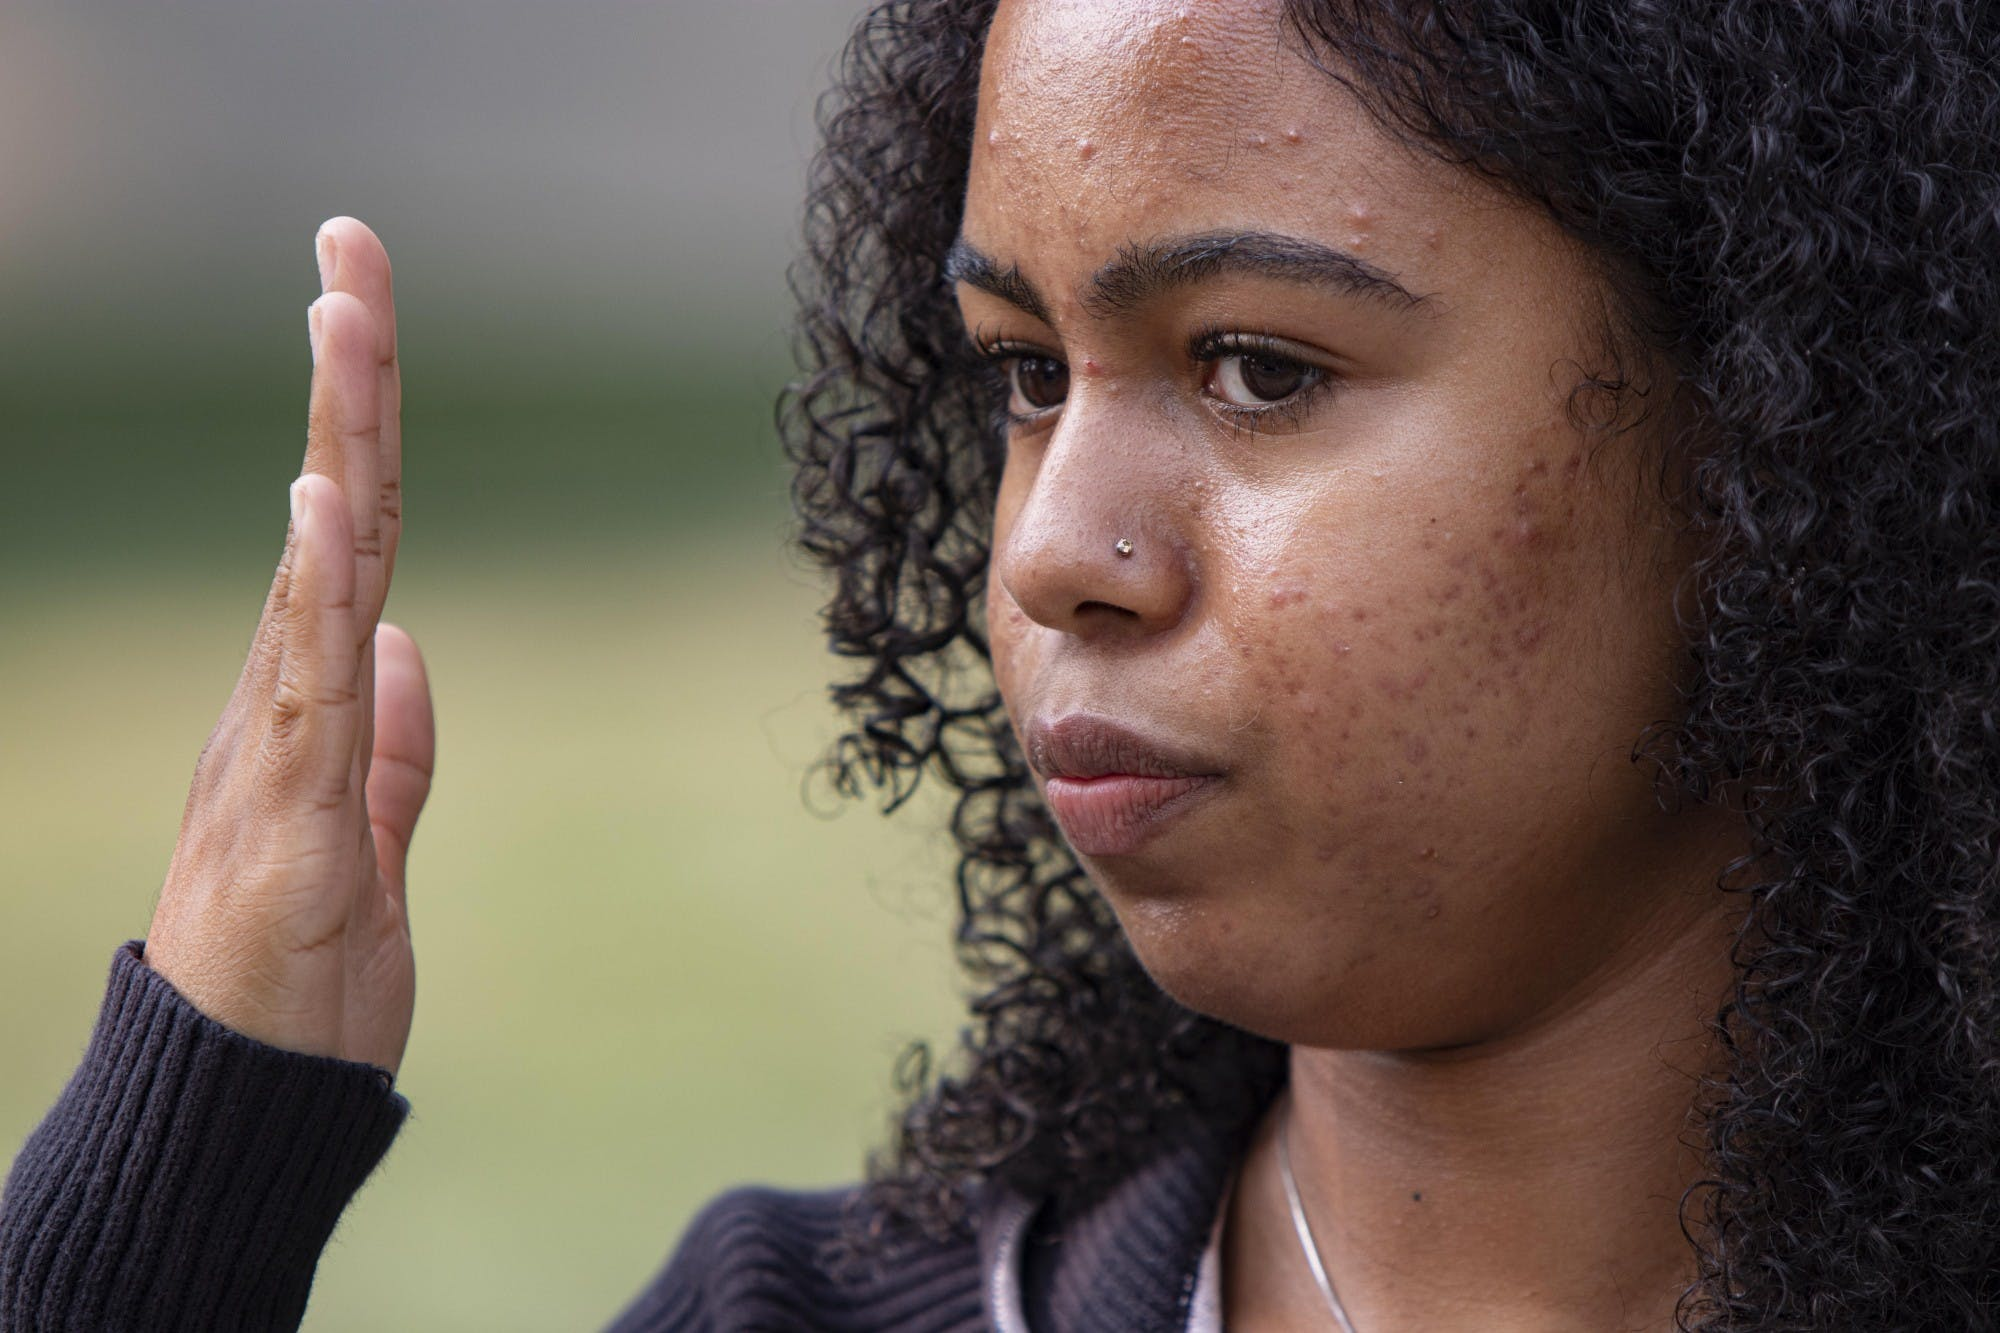 Junior Alice Aluko describes the act of bias she experienced her freshman year at IU on Sept. 15 at the corner of Third Street and Indiana Avenue. Aluko shows how close the verbal attacker was to her face with her hand.